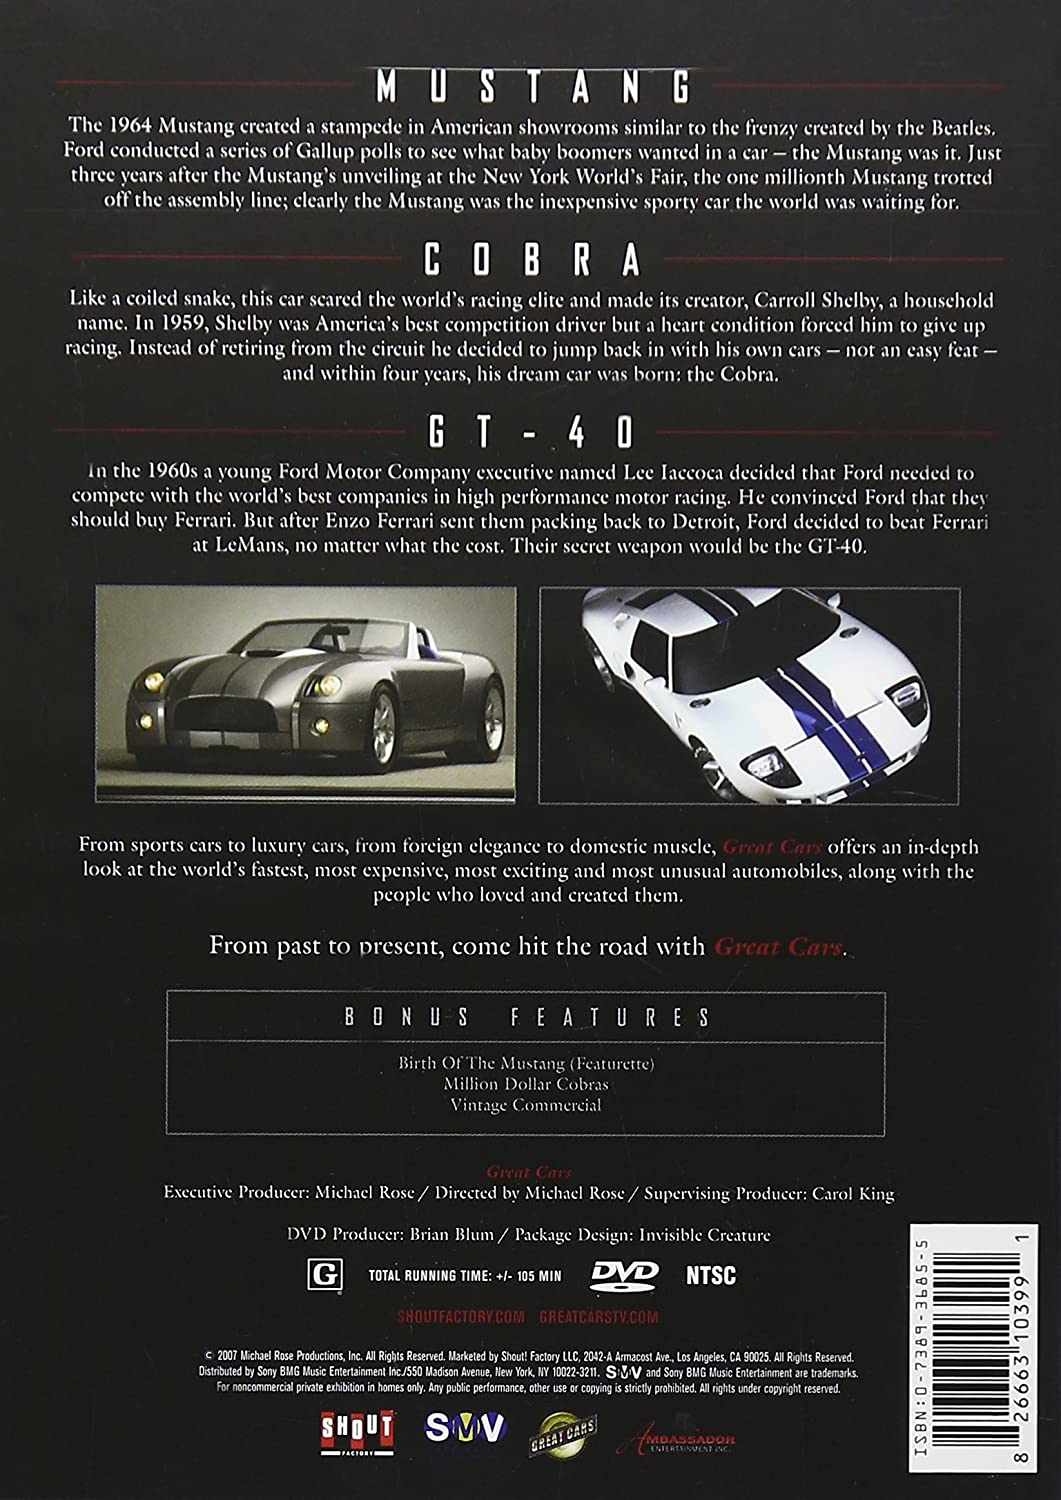 Great Cars Mustang Cobra Gt40 Movies Tv 1960s Ford Sports